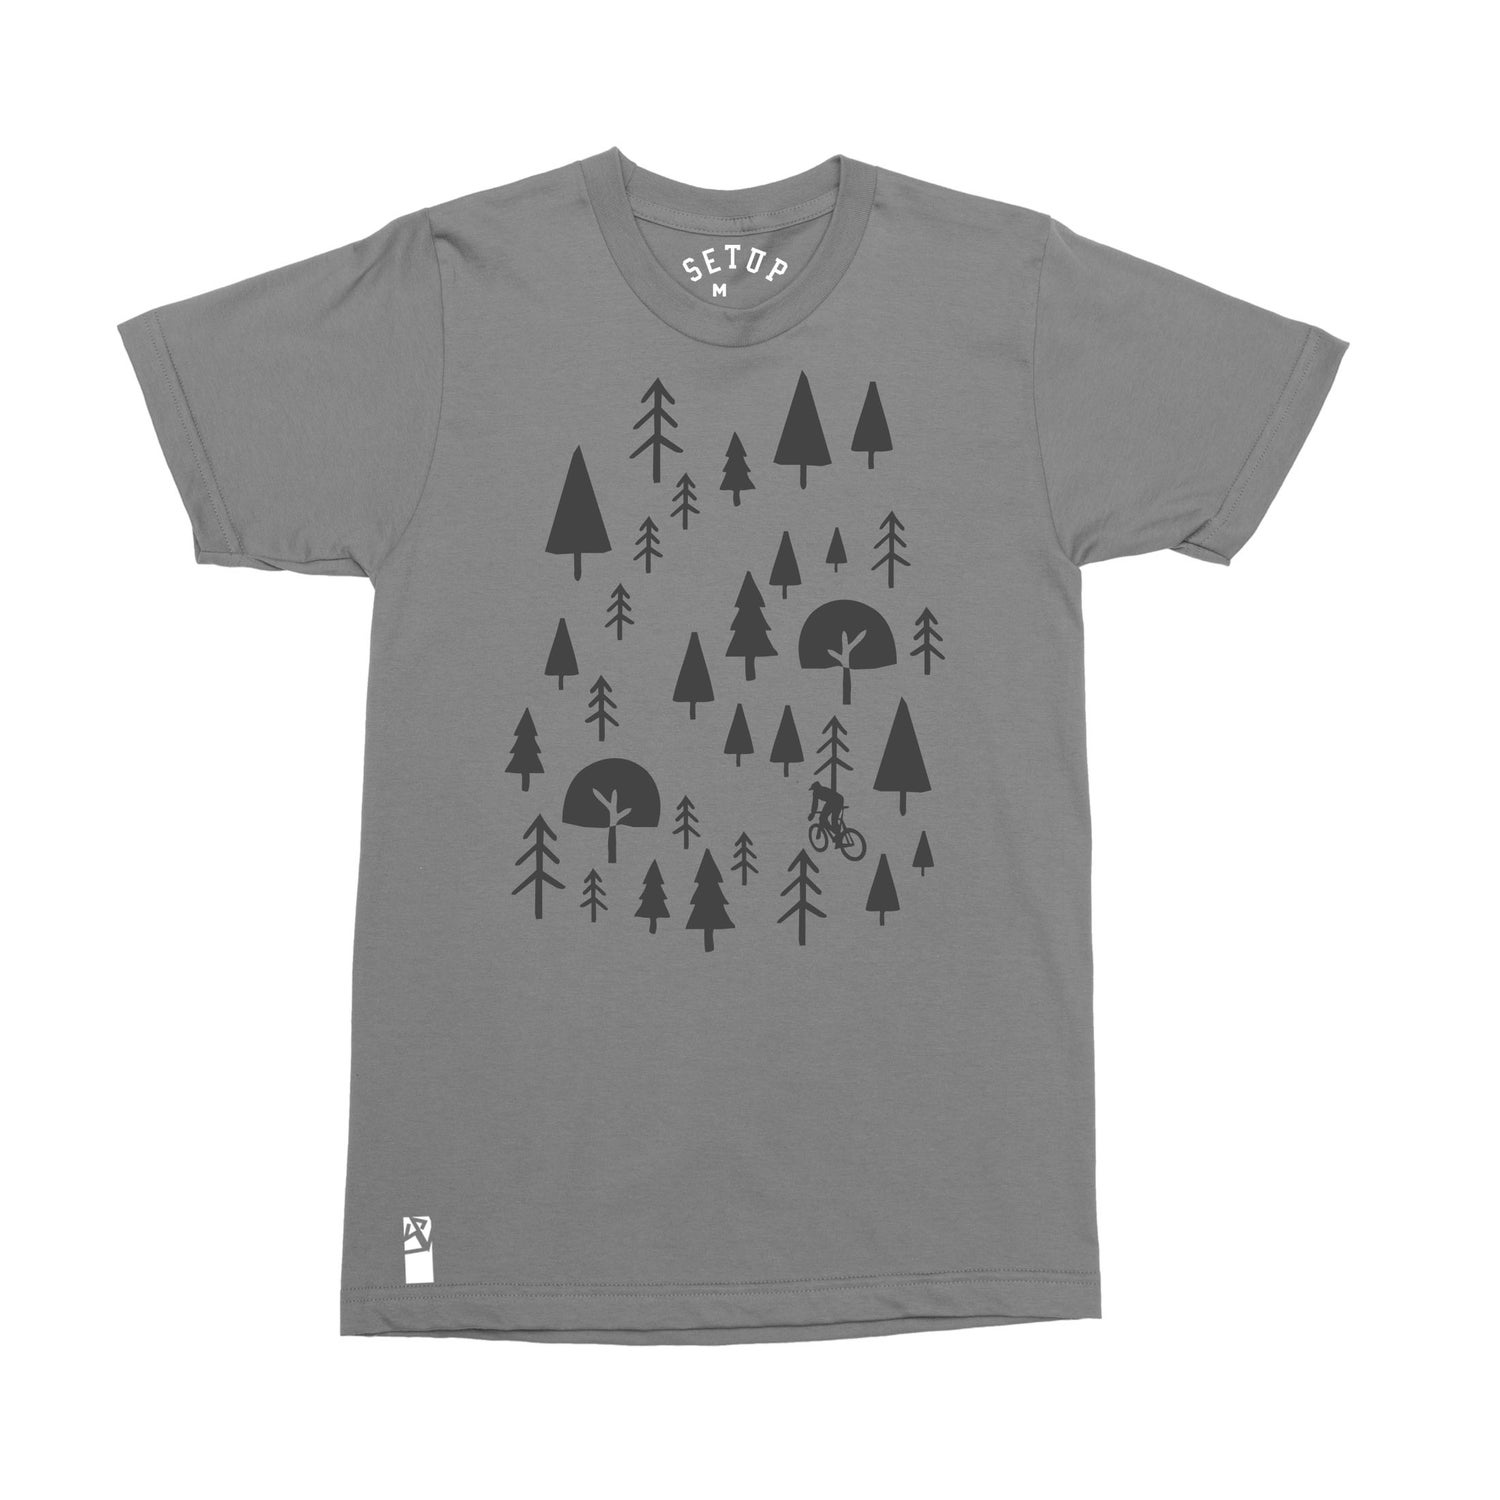 Image of The Cyclist T-Shirt